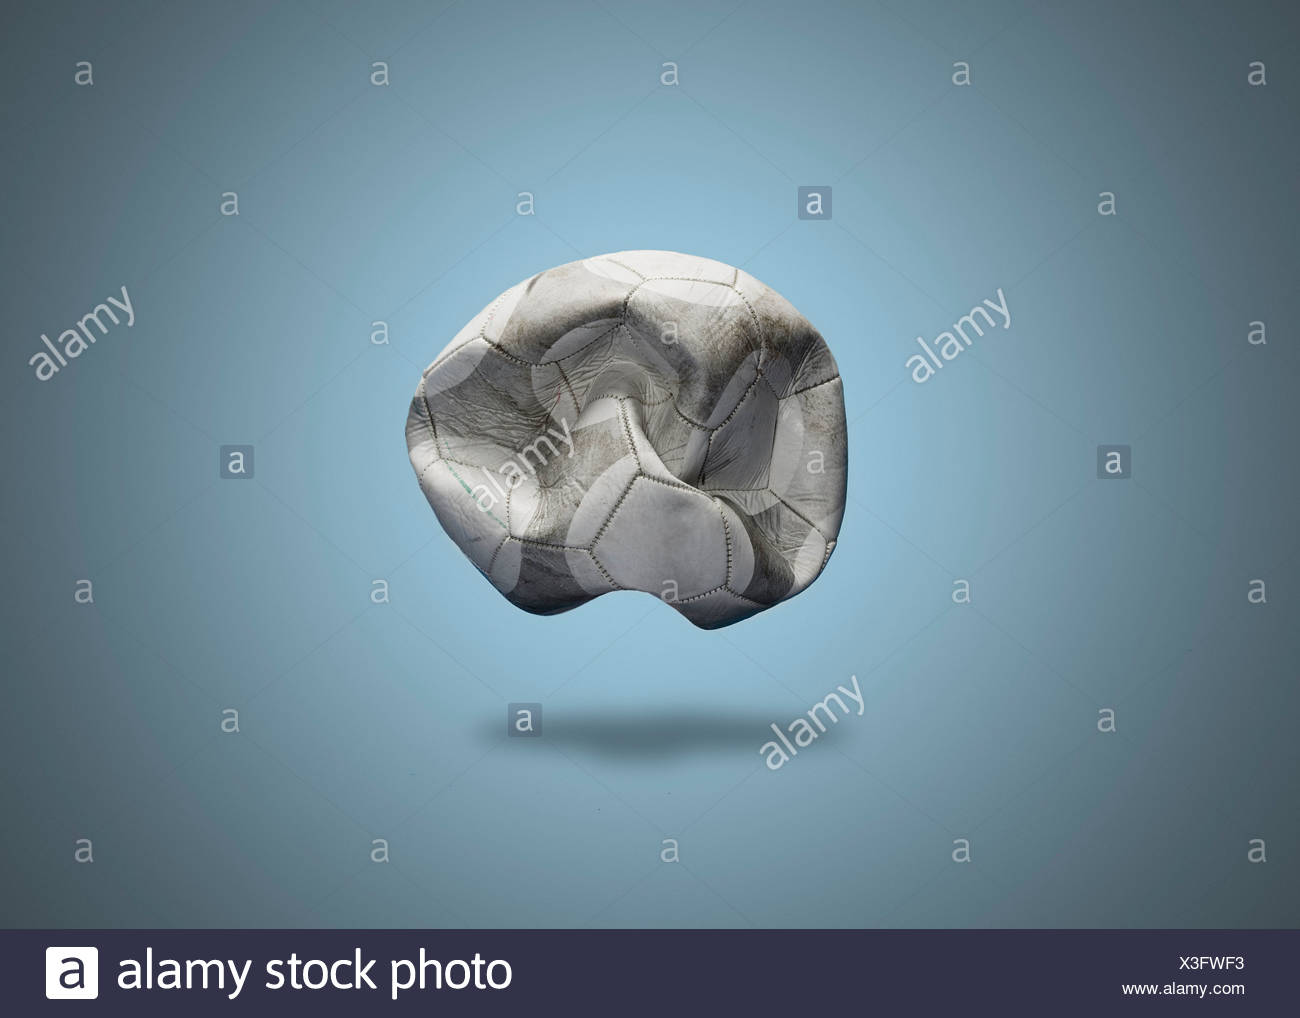 Close up of deflated soccer ball - Stock Image